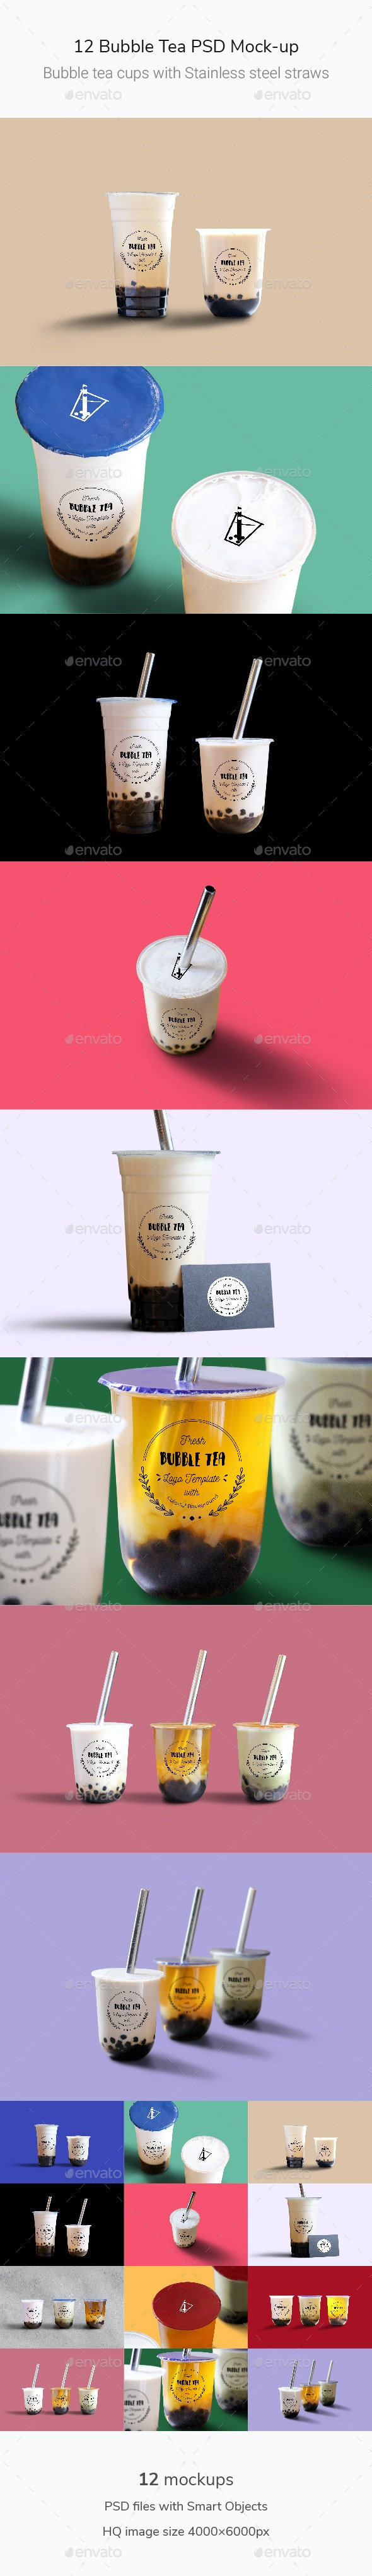 Bubble Tea PSD Mock-up - Food and Drink Packaging